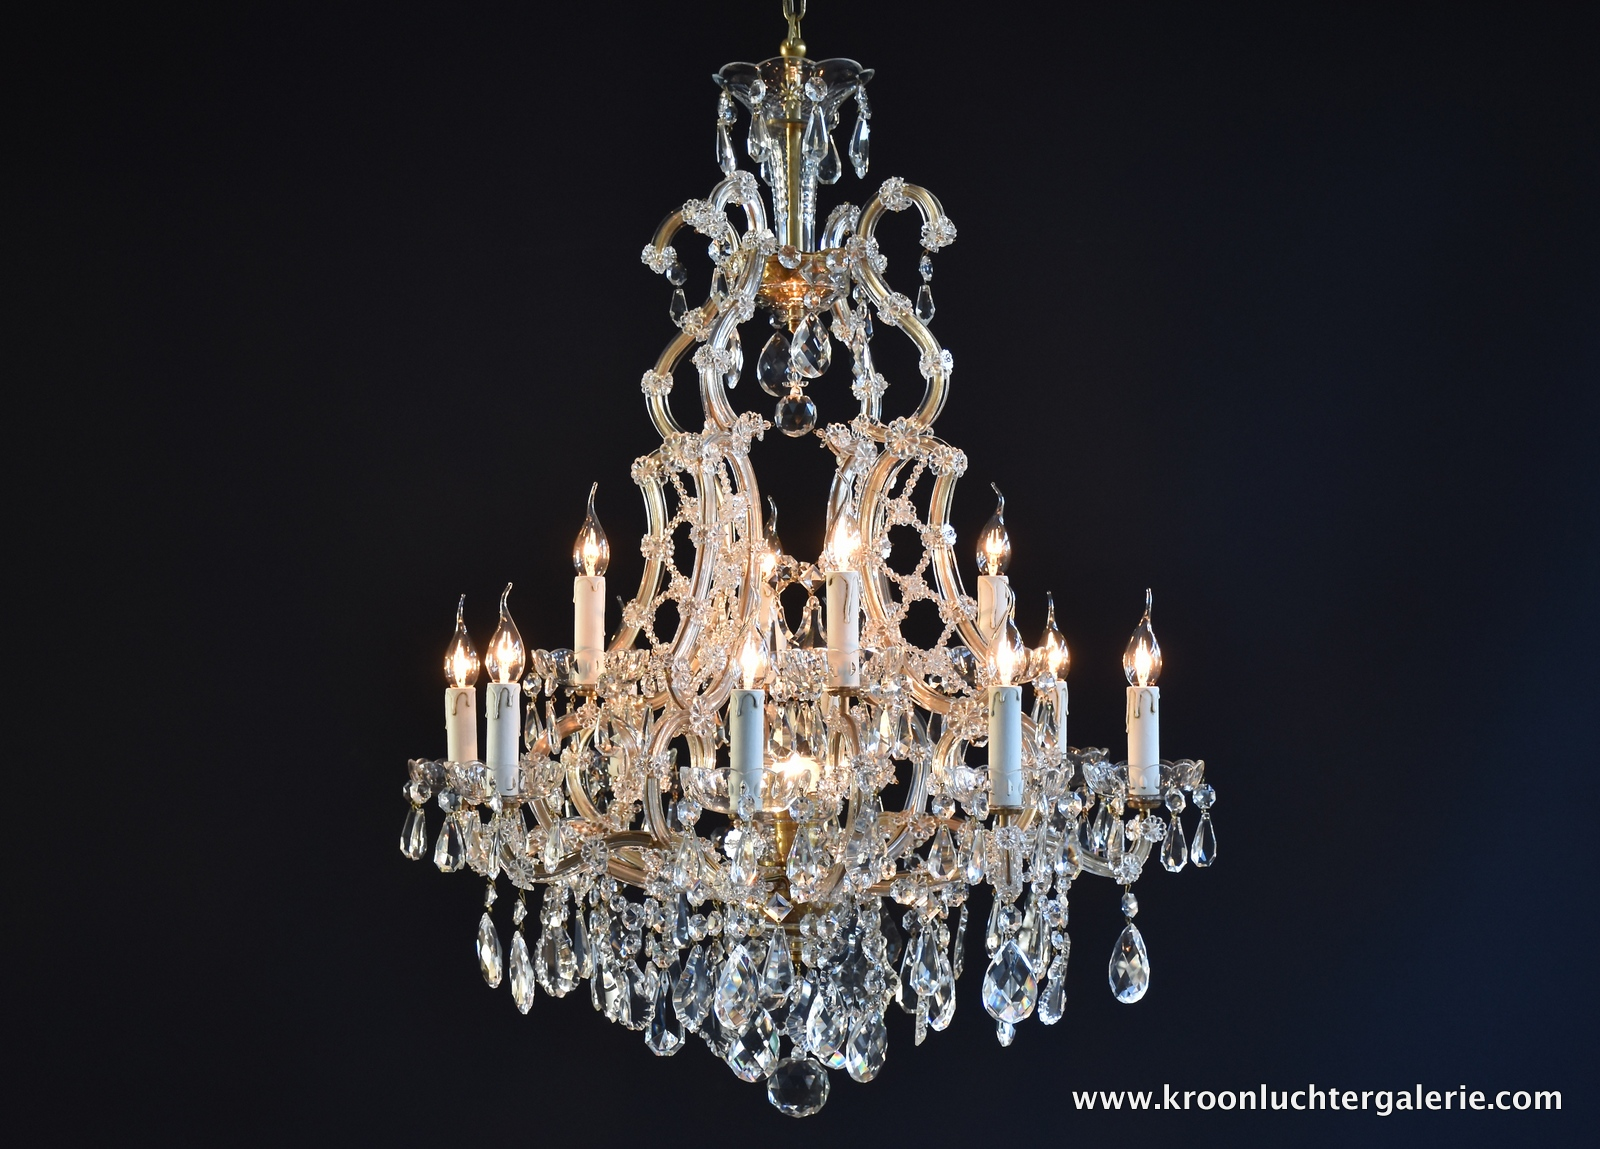 Large crystal chandelier with 13 light